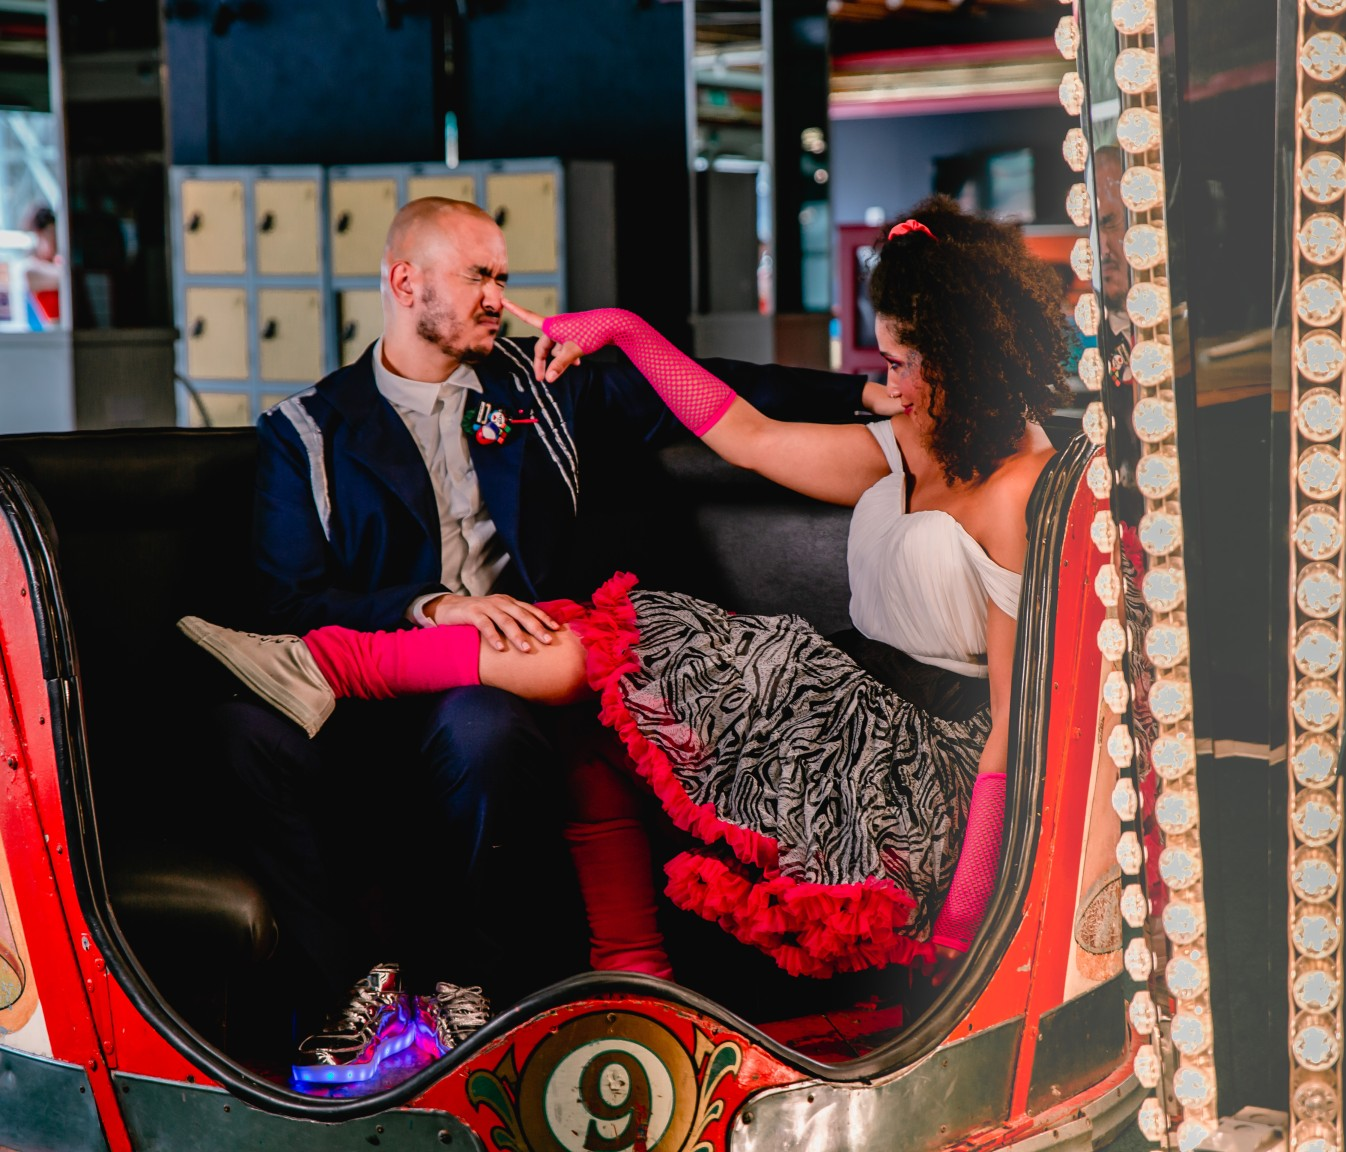 80s themed wedding - funfair wedding